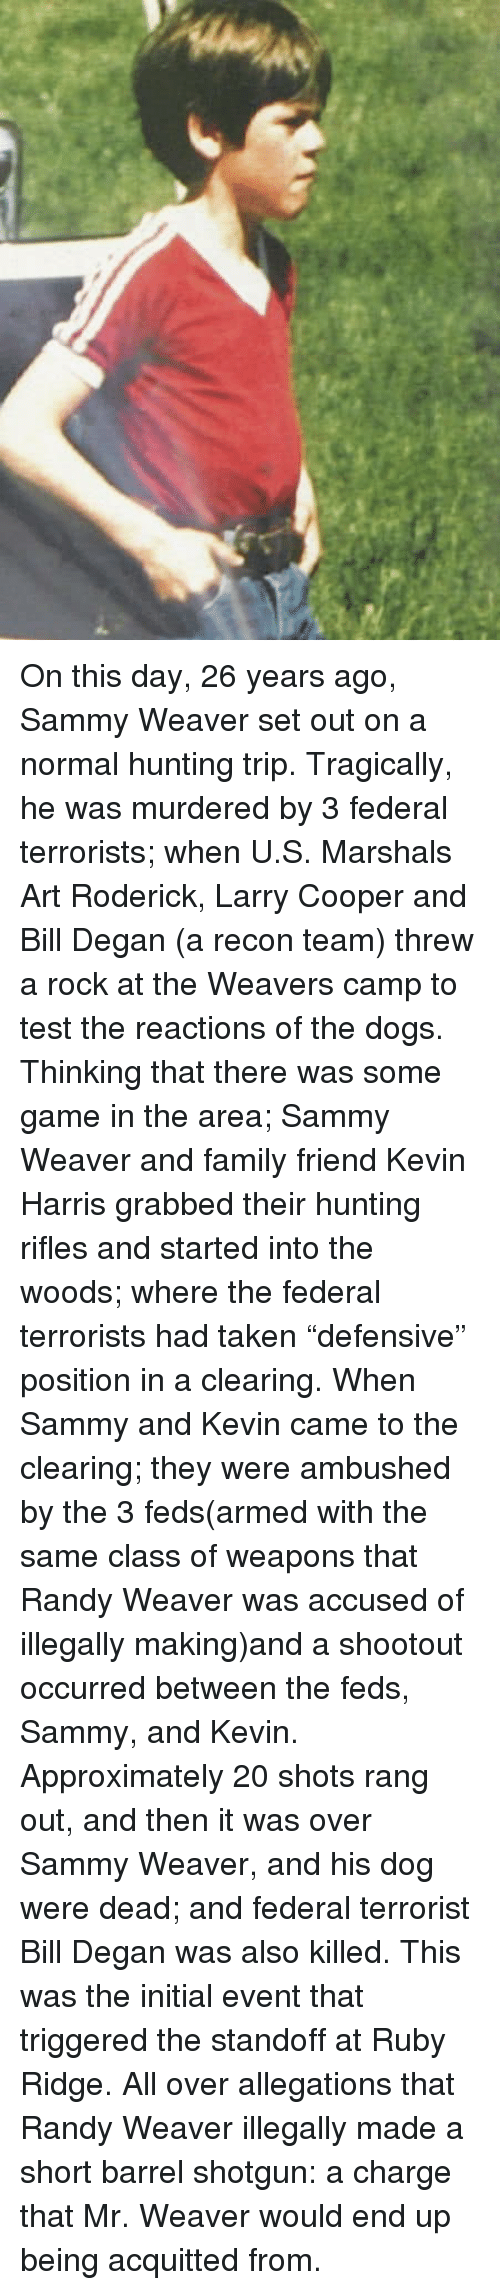 """Dogs, Family, and Memes: On this day, 26 years ago, Sammy Weaver set out on a normal hunting trip. Tragically, he was murdered by 3 federal terrorists; when U.S. Marshals Art Roderick, Larry Cooper and Bill Degan (a recon team) threw a rock at the Weavers camp to test the reactions of the dogs.   Thinking that there was some game in the area; Sammy Weaver and family friend Kevin Harris grabbed their hunting rifles and started into the woods; where the federal terrorists had taken """"defensive"""" position in a clearing. When Sammy and Kevin came to the clearing; they were ambushed by the 3 feds(armed with the same class of weapons that Randy Weaver was accused of illegally making)and a shootout occurred between the feds, Sammy, and Kevin. Approximately 20 shots rang out, and then it was over Sammy Weaver, and his dog were dead; and federal terrorist Bill Degan was also killed.   This was the initial event that triggered the standoff at Ruby Ridge. All over allegations that Randy Weaver illegally made a short barrel shotgun: a charge that Mr. Weaver would end up being acquitted from."""